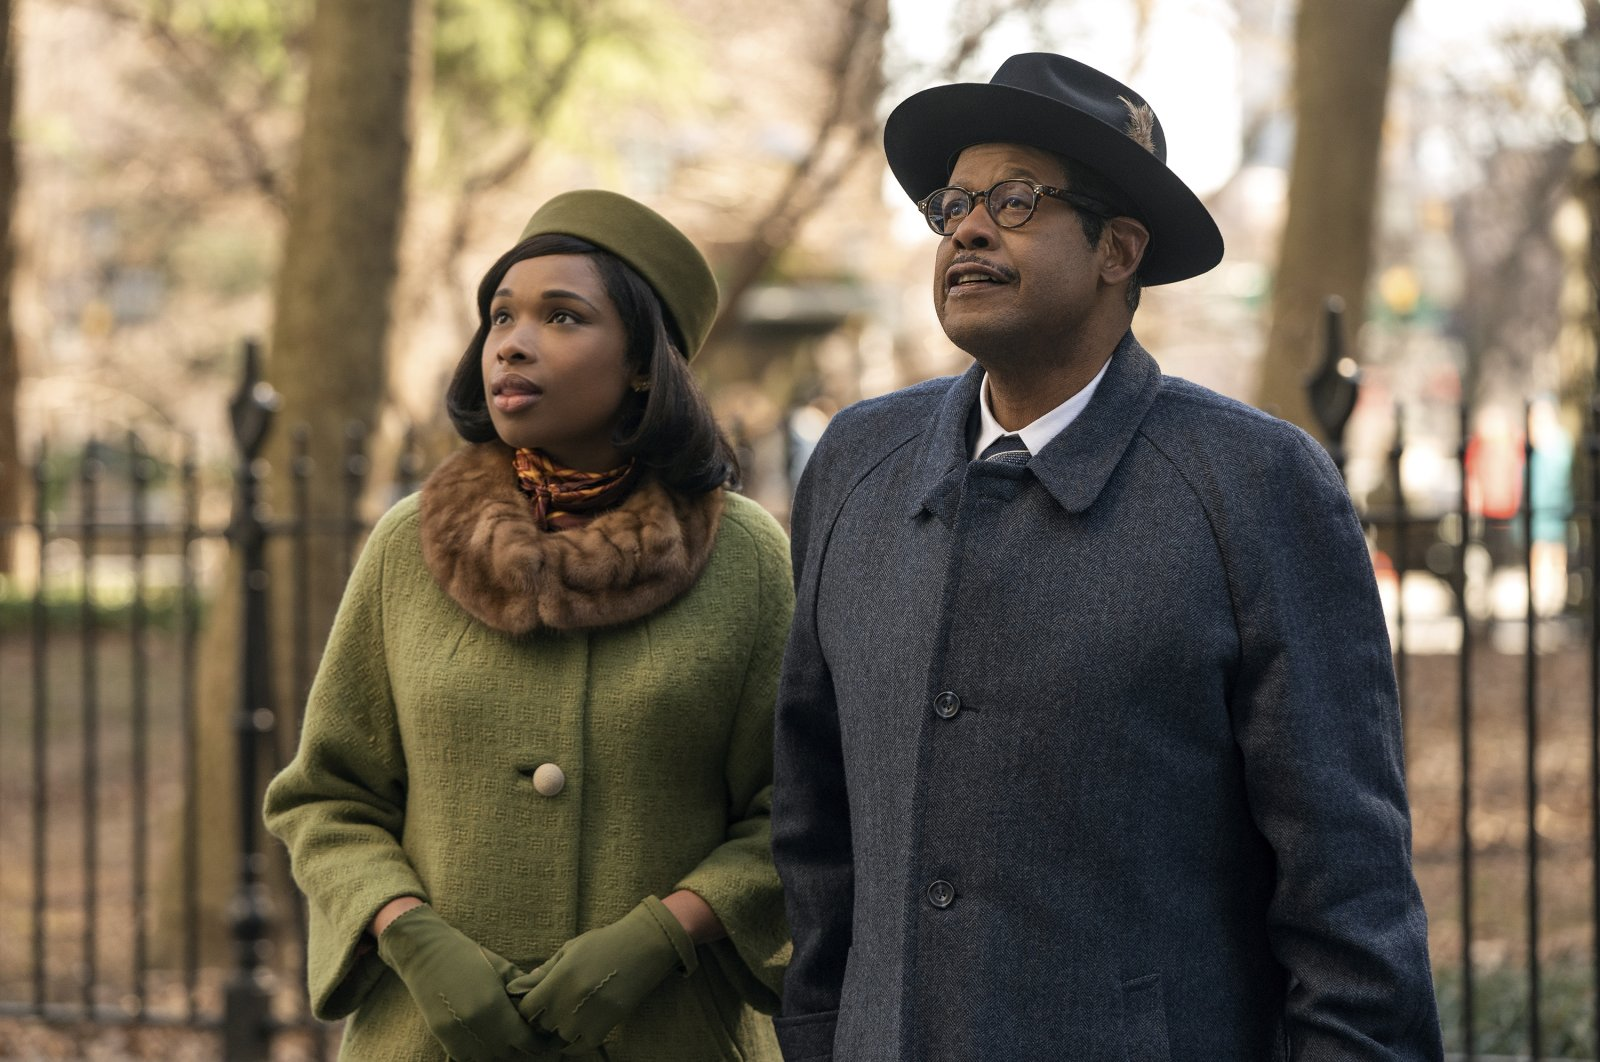 """Jennifer Hudson as Aretha Franklin (L) and Forest Whitaker as C.L. Franklin (R) in a scene from """"Respect."""" (MGM via AP)"""